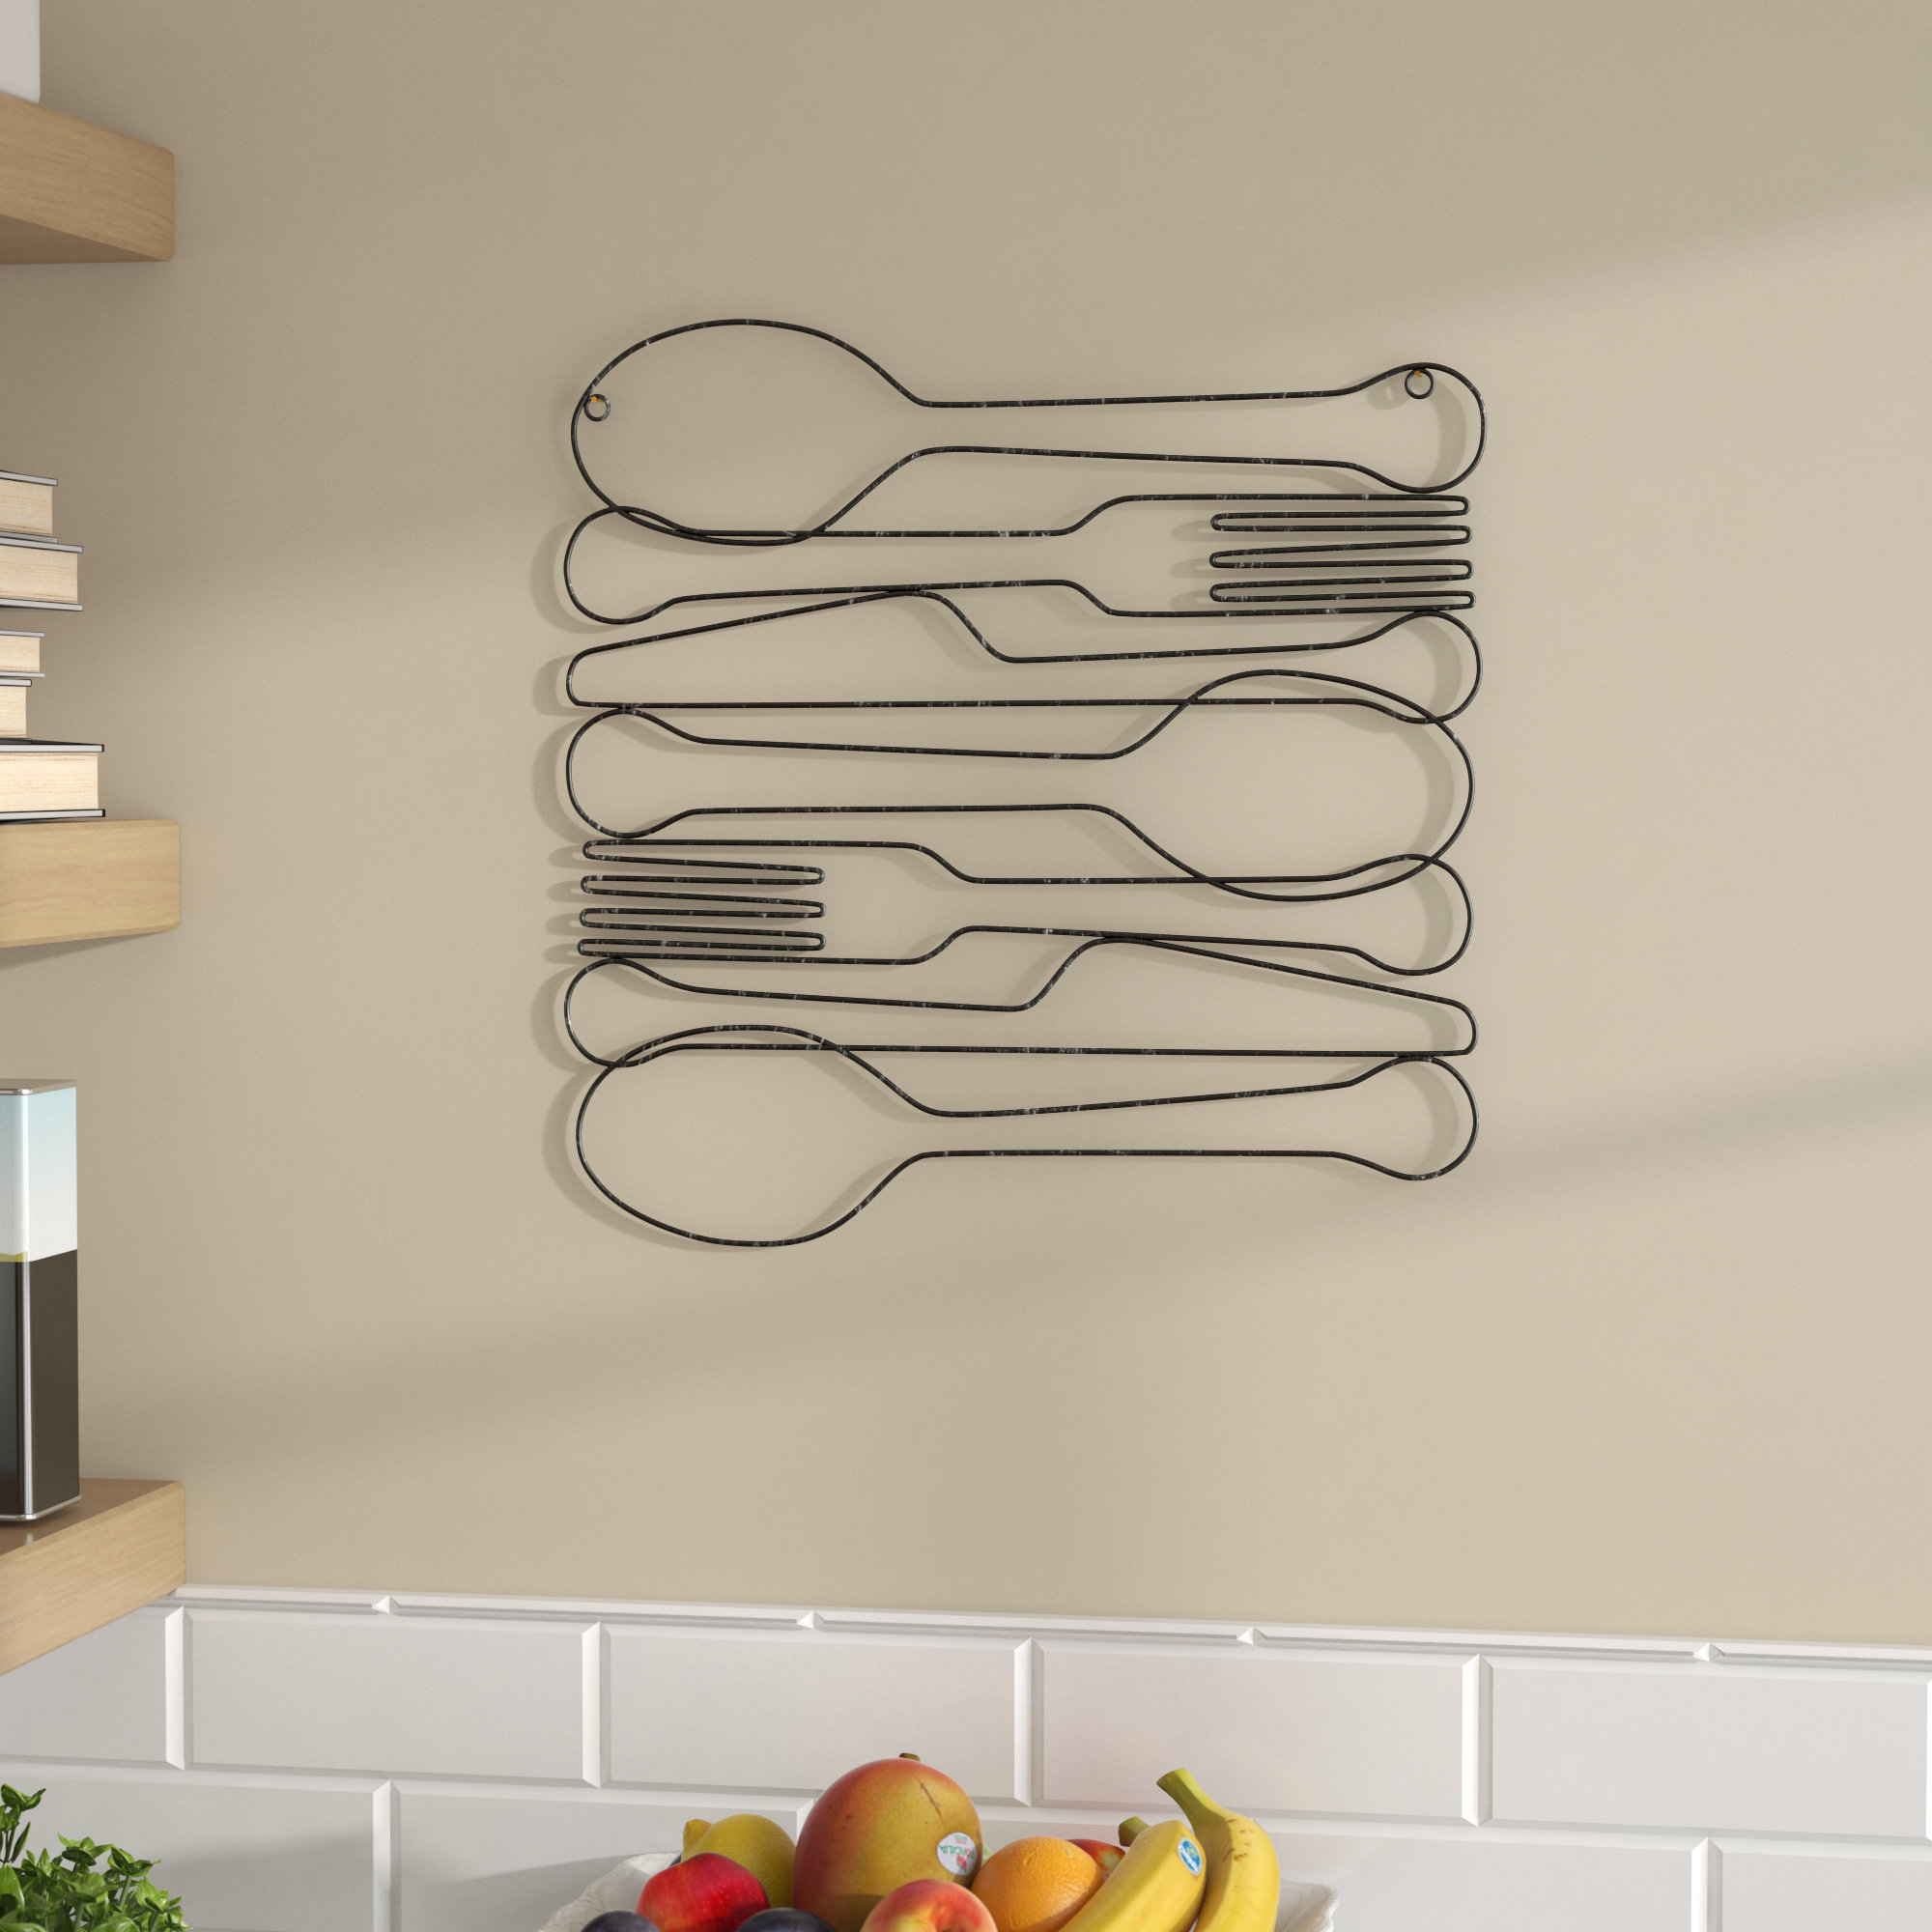 Wayfair Regarding Well Known Metal Wall Decor By Ebern Designs (View 5 of 20)